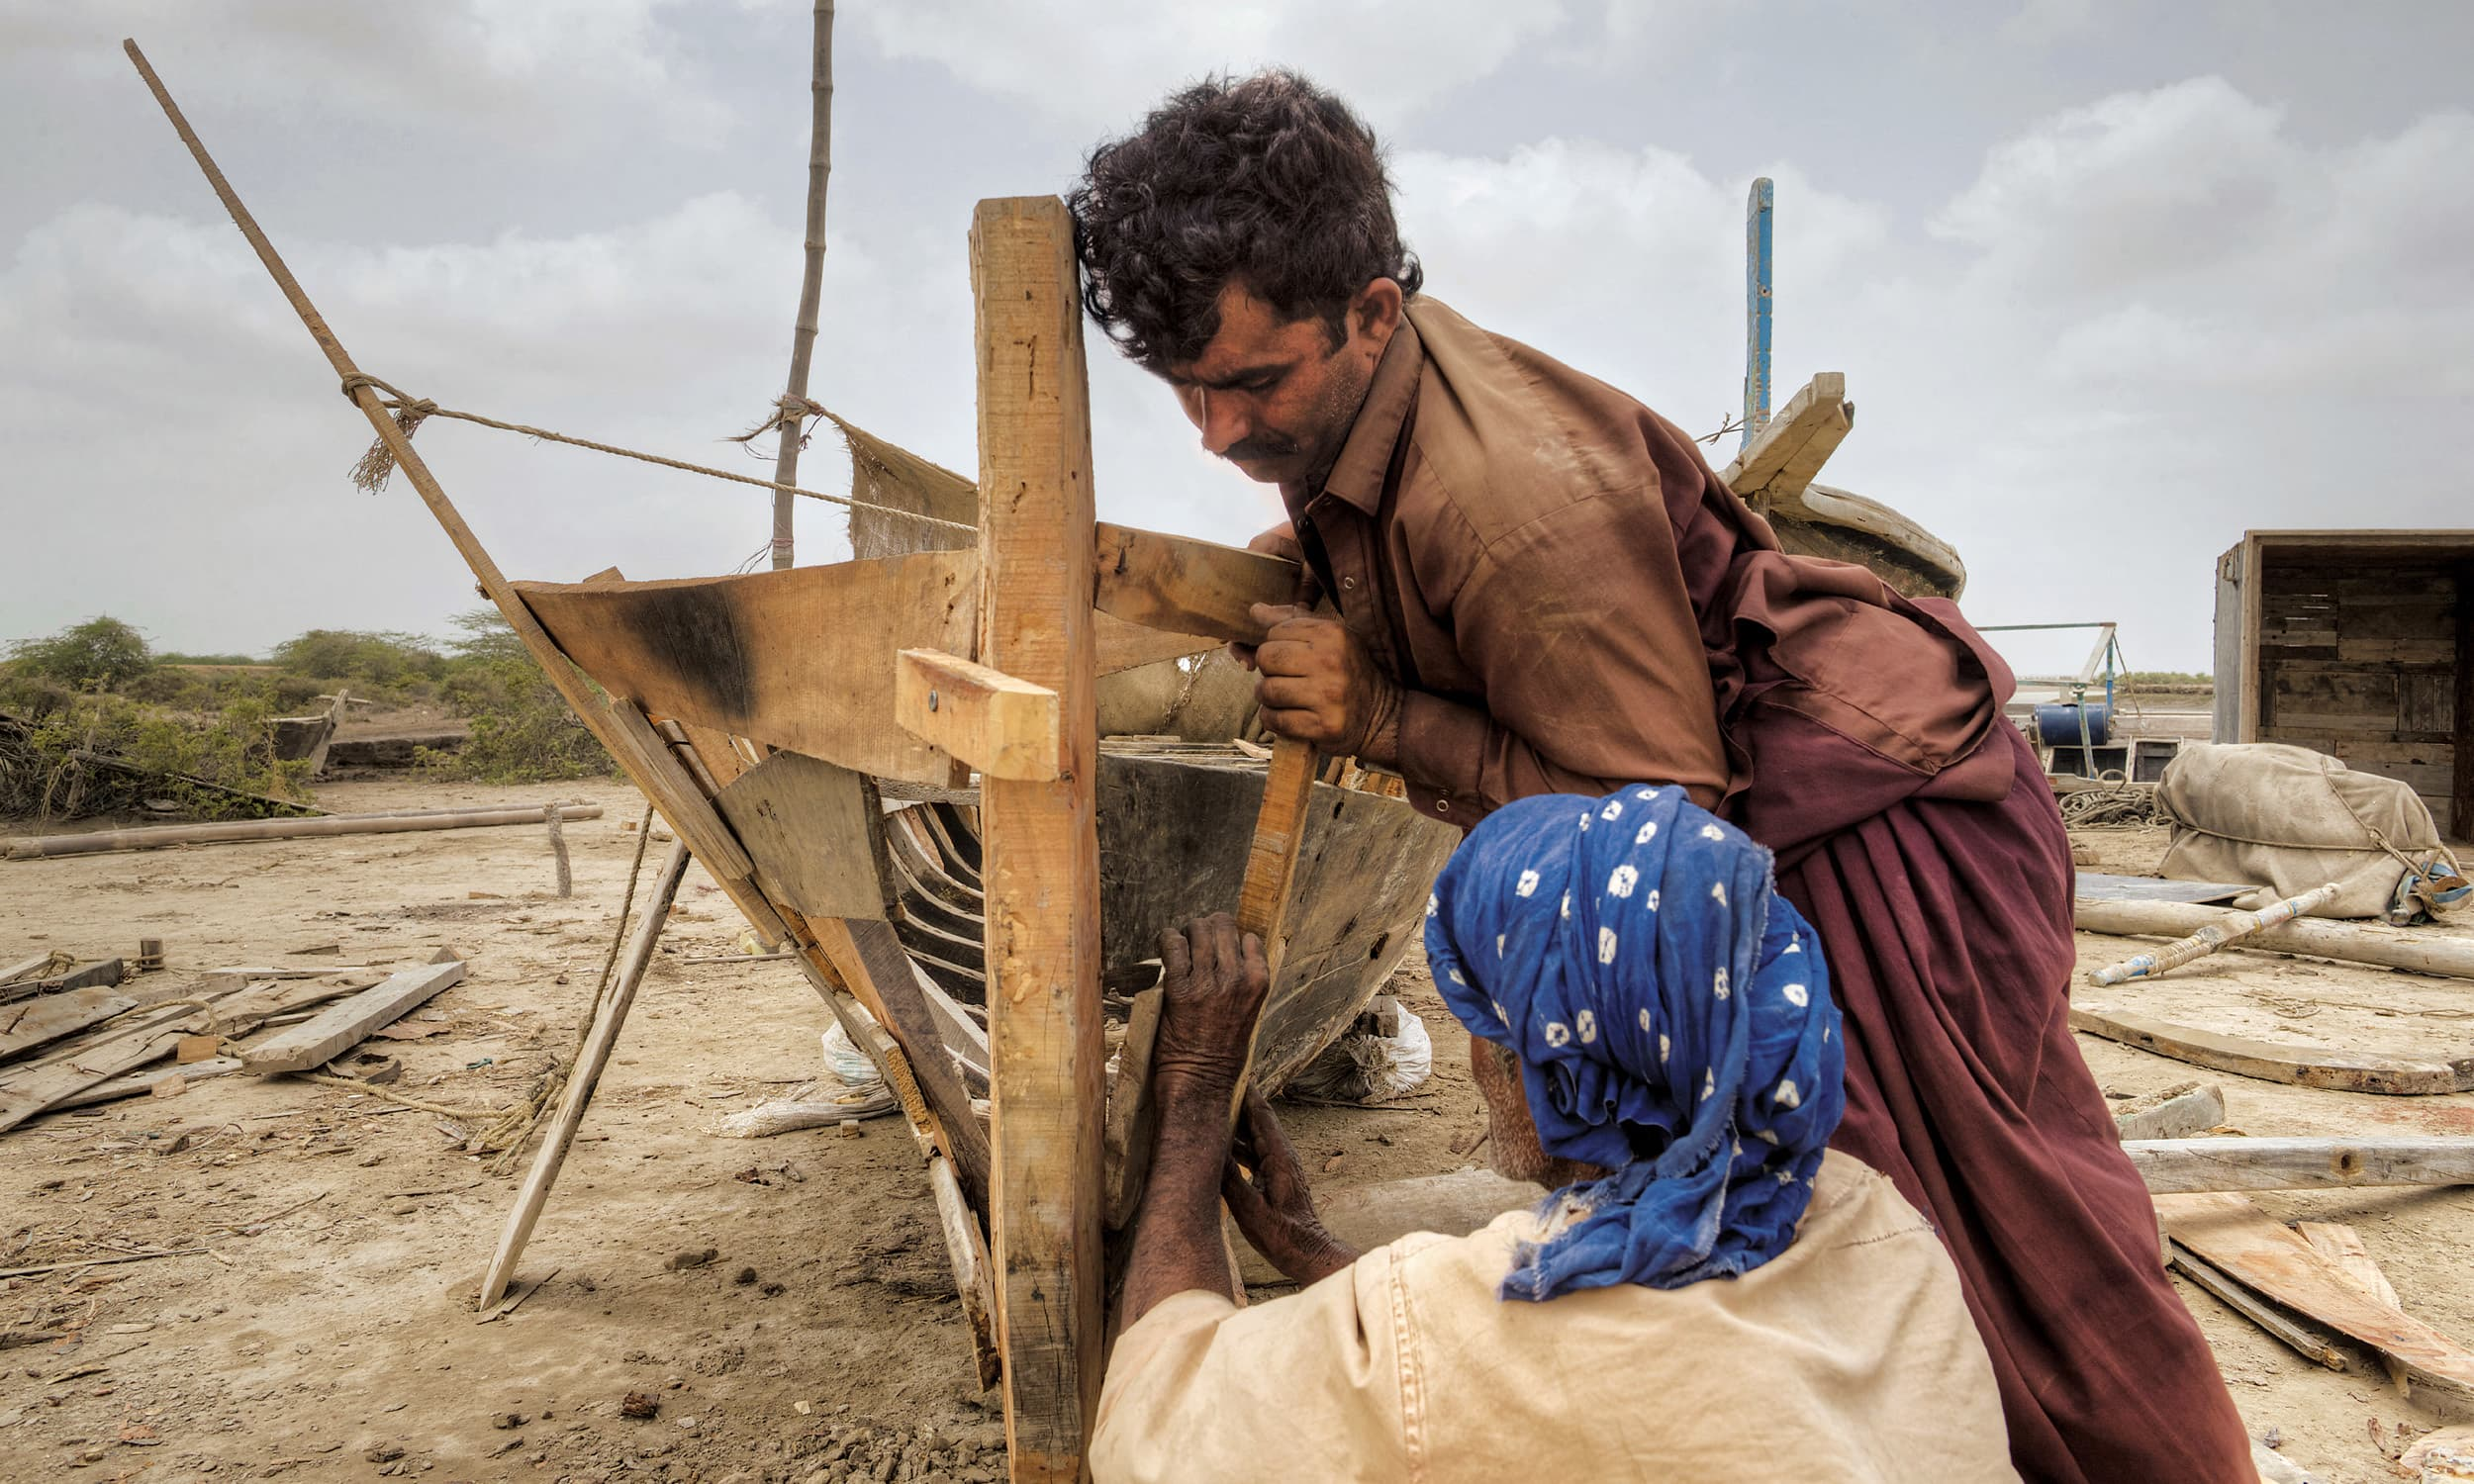 A carpenter and his apprentice at work on a boat close to the Pakistan-India border near Shah Bandar | Kohi Marri